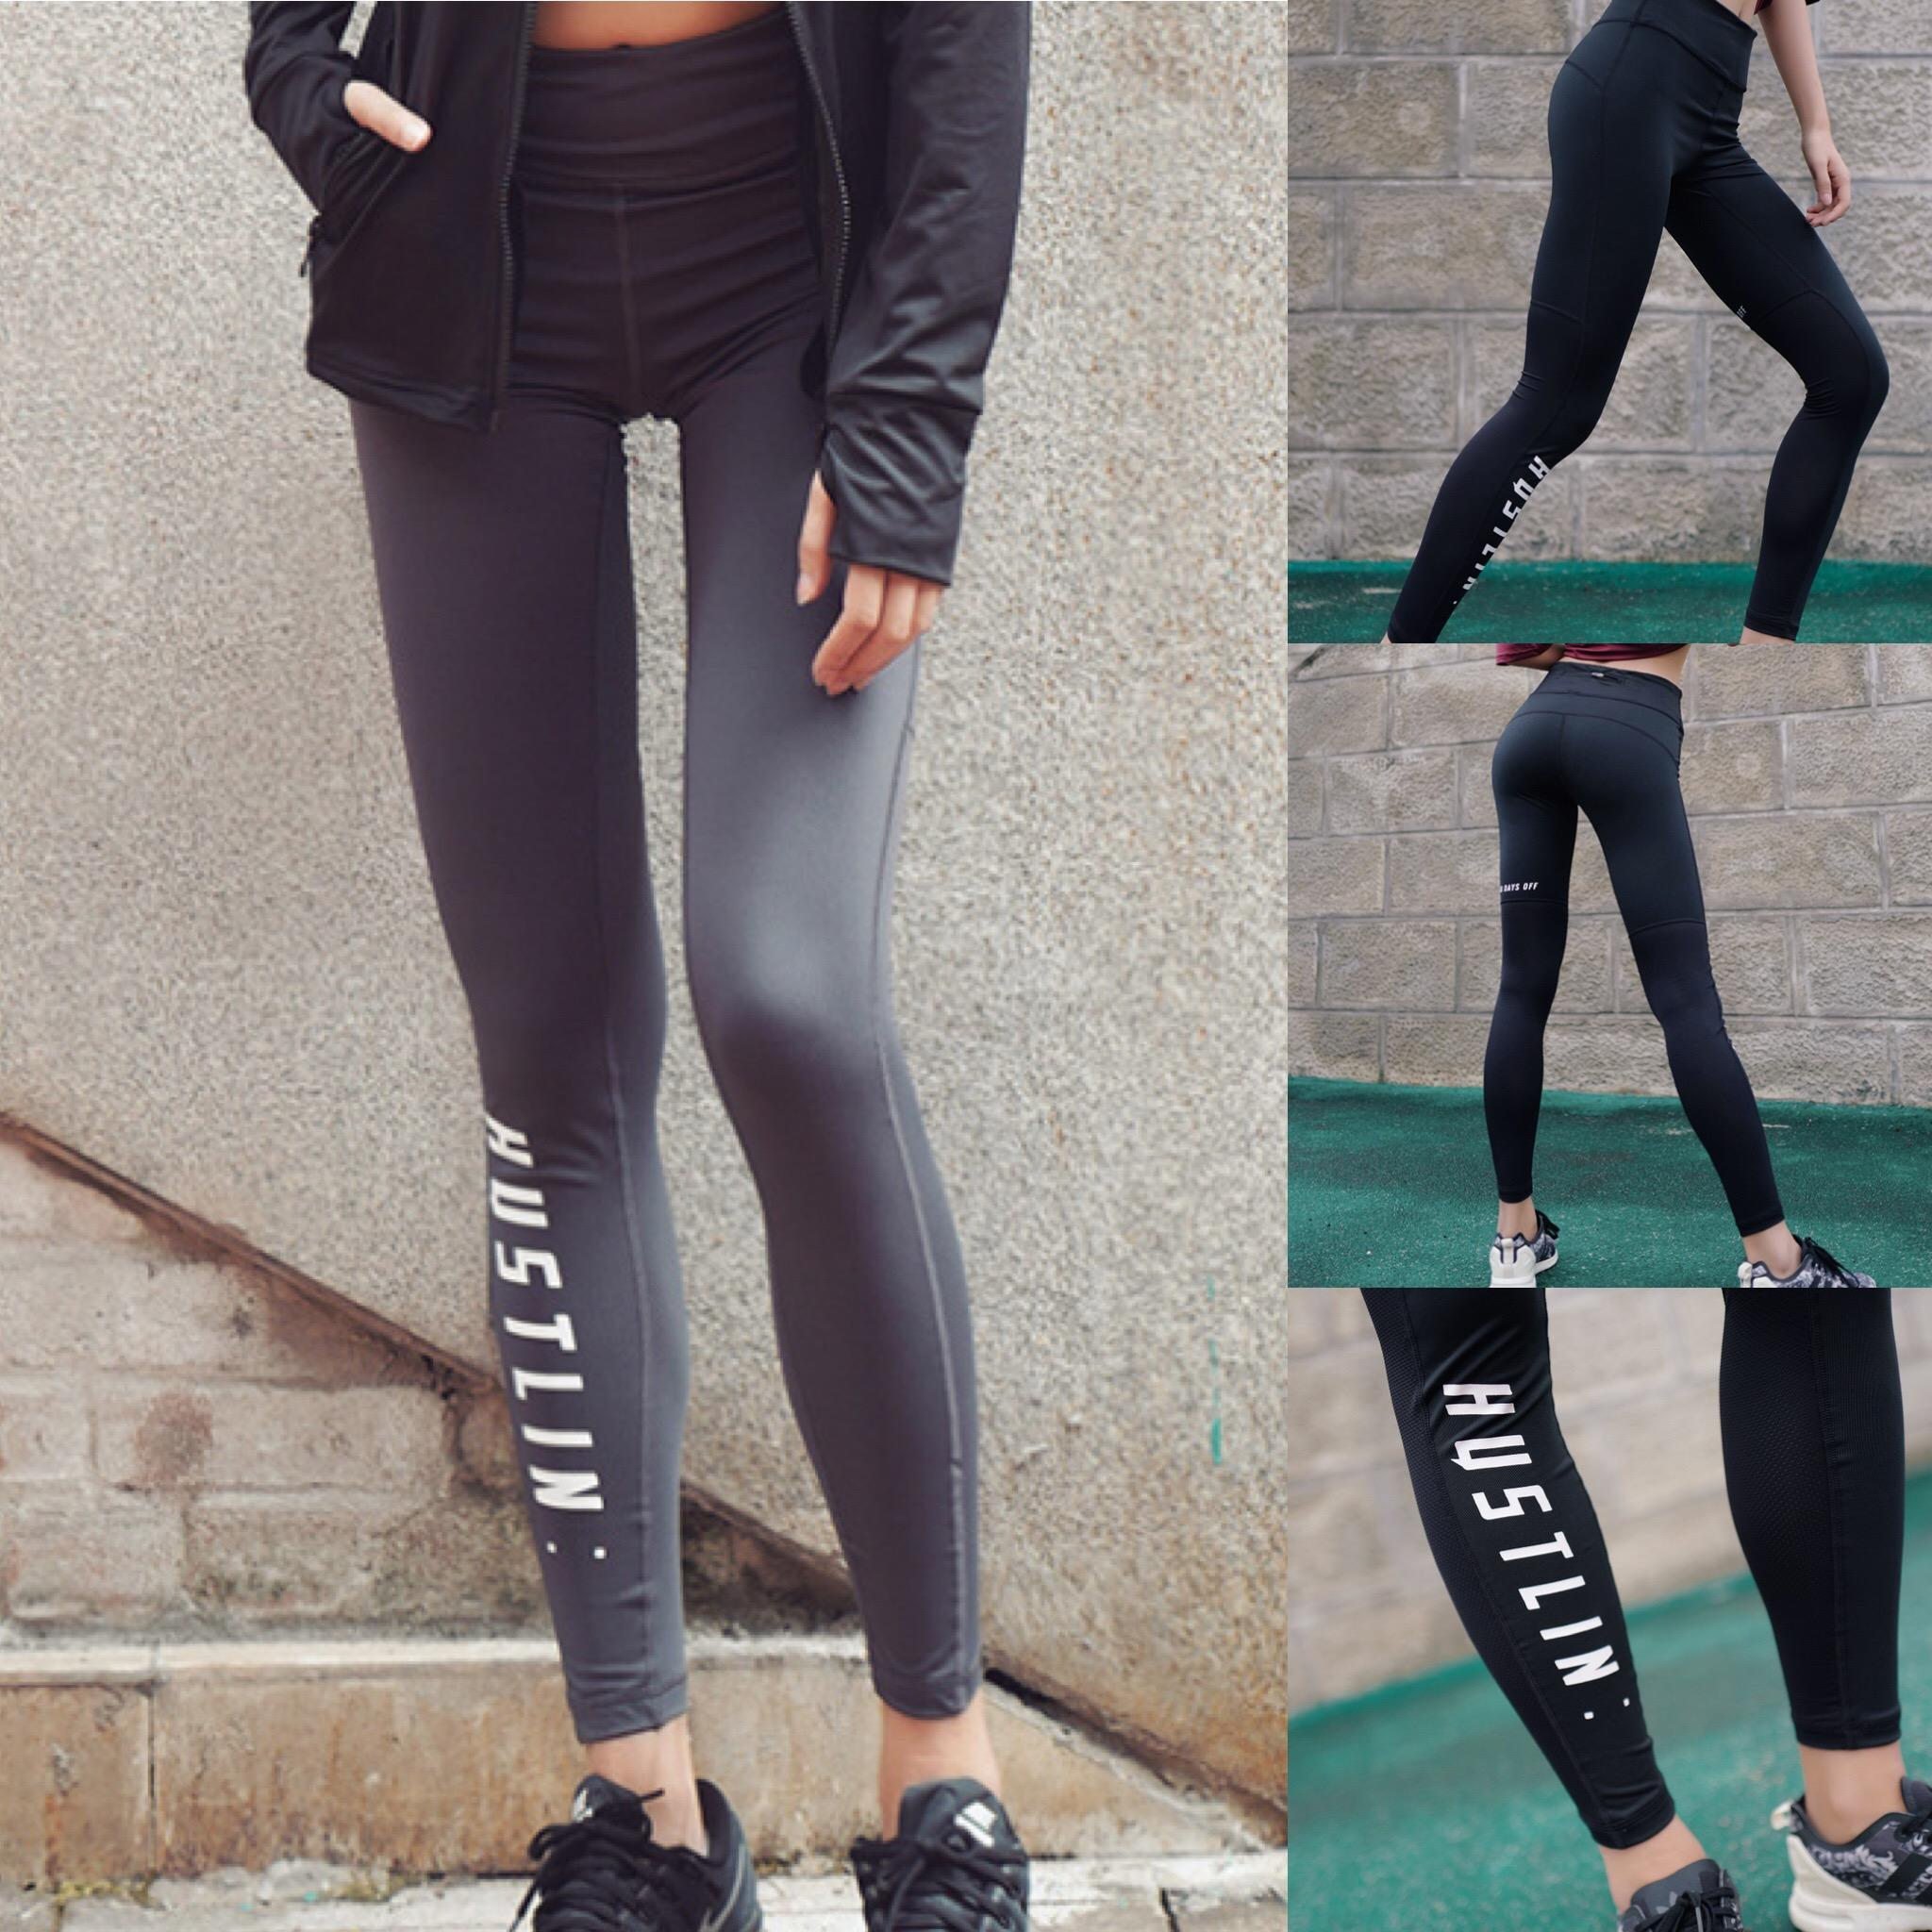 1e0838a70f28 2019 New Sports Leggings Yoga Pants Letter Printed Style Women Sexy Hip  Push Up Pants Fitness Workout Gym Jogging Trousers From Szghhcool